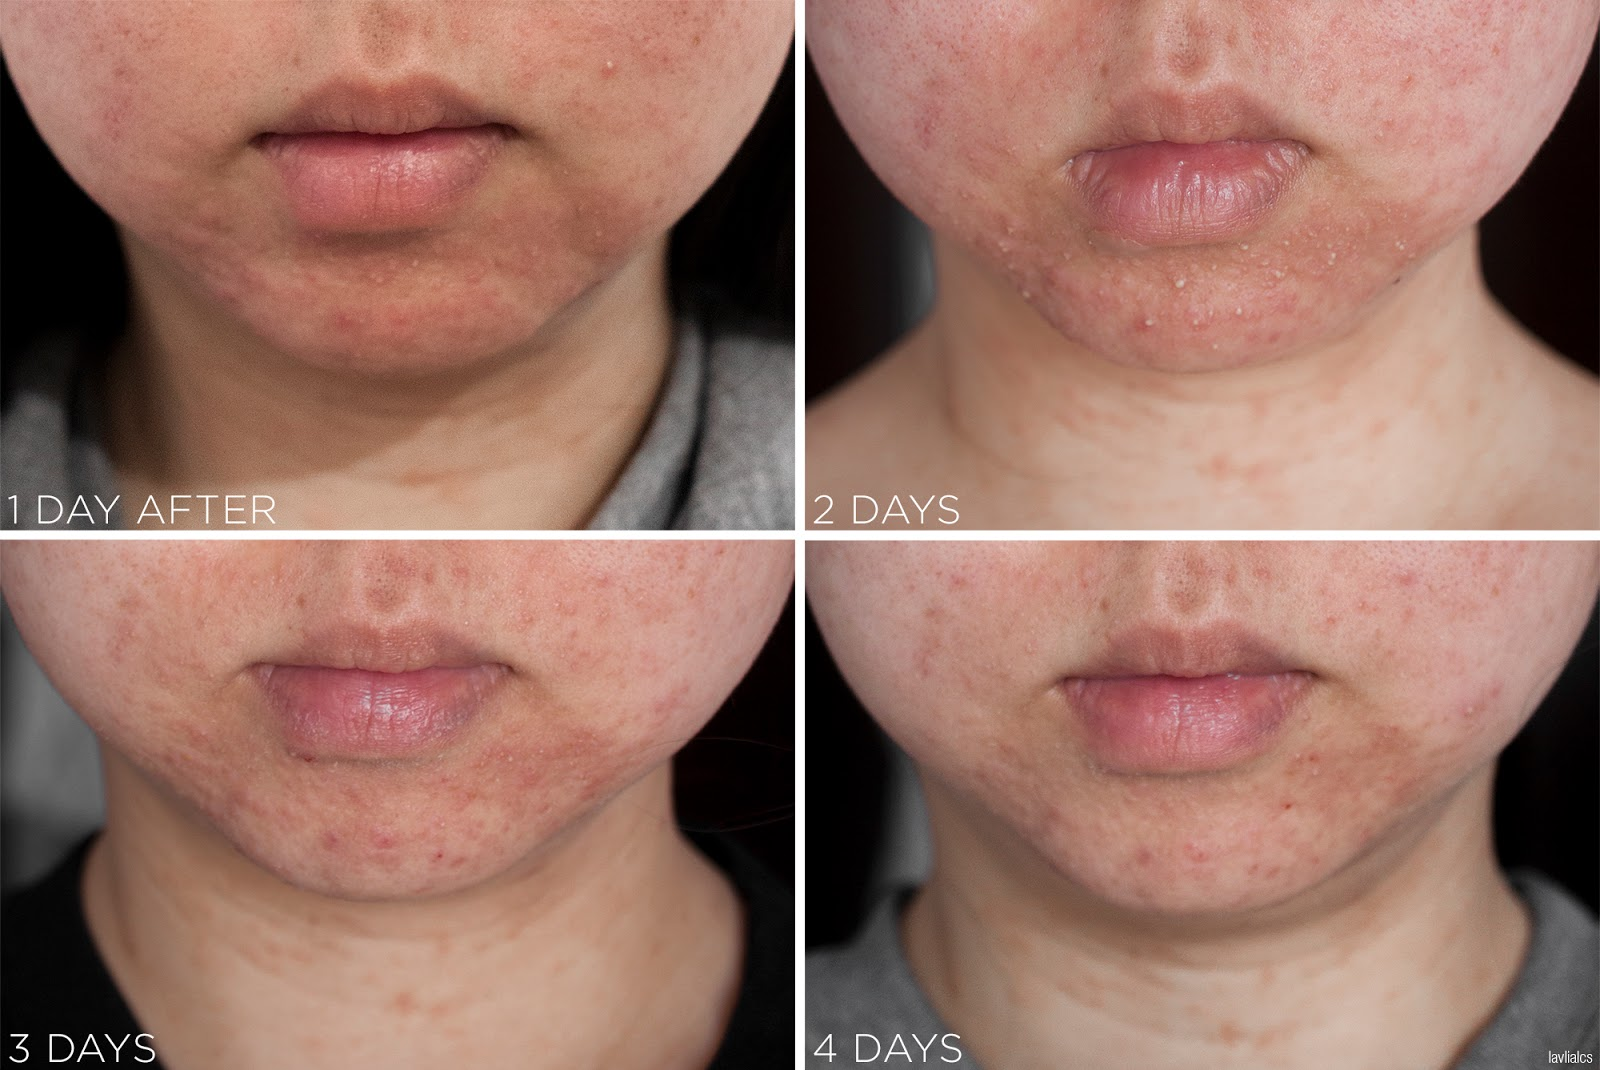 lavlilacs skin allergy - reaction progression and healing